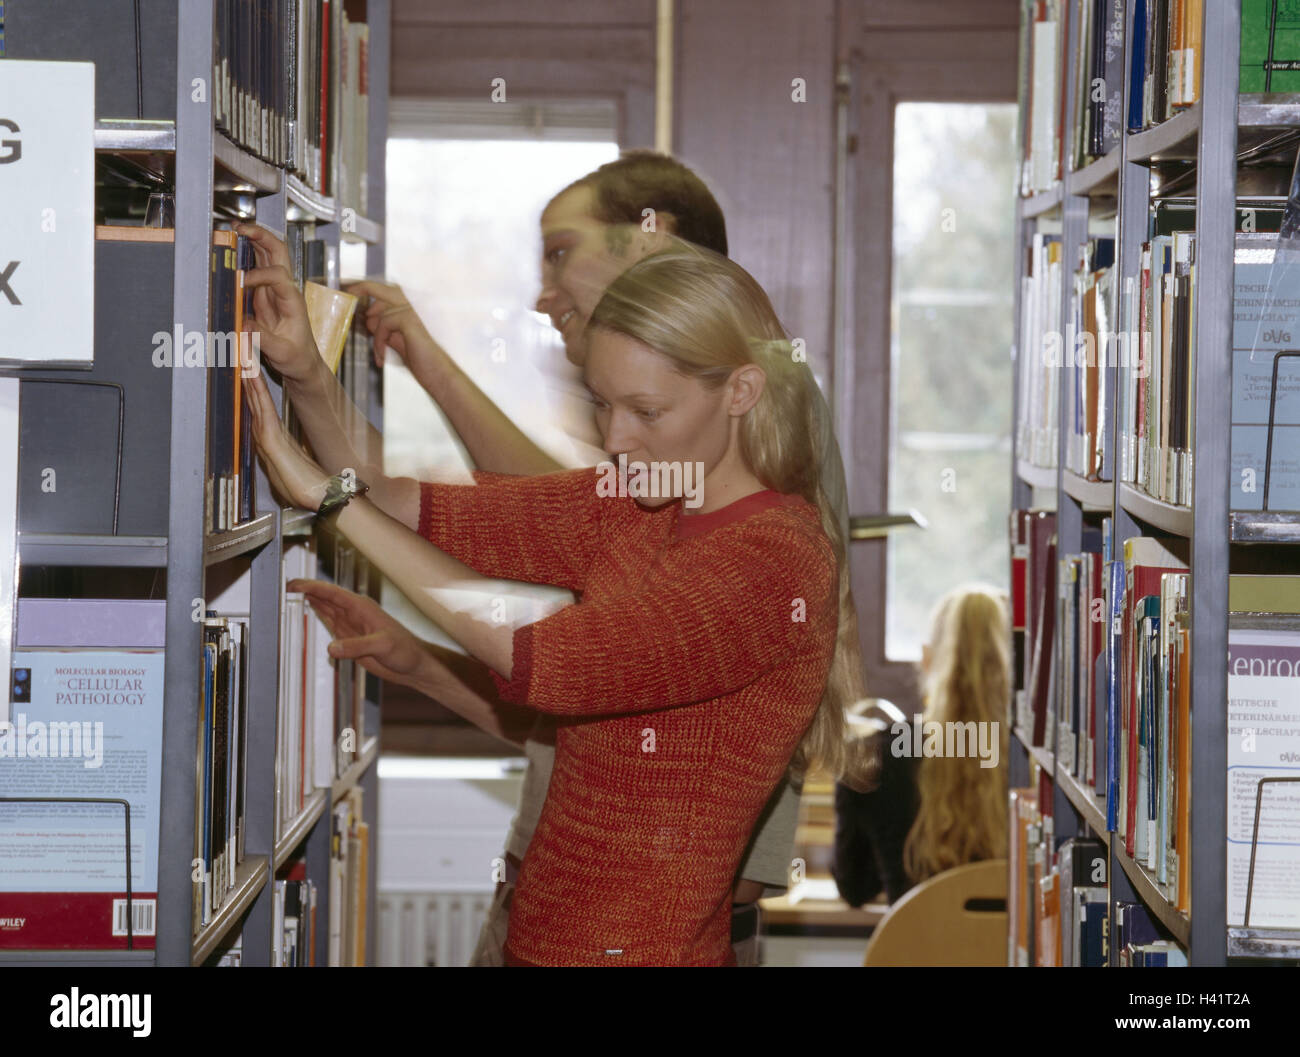 Library, student, books, select school, school library, public library, woman, man, young, shelves, books, literature, Stock Photo